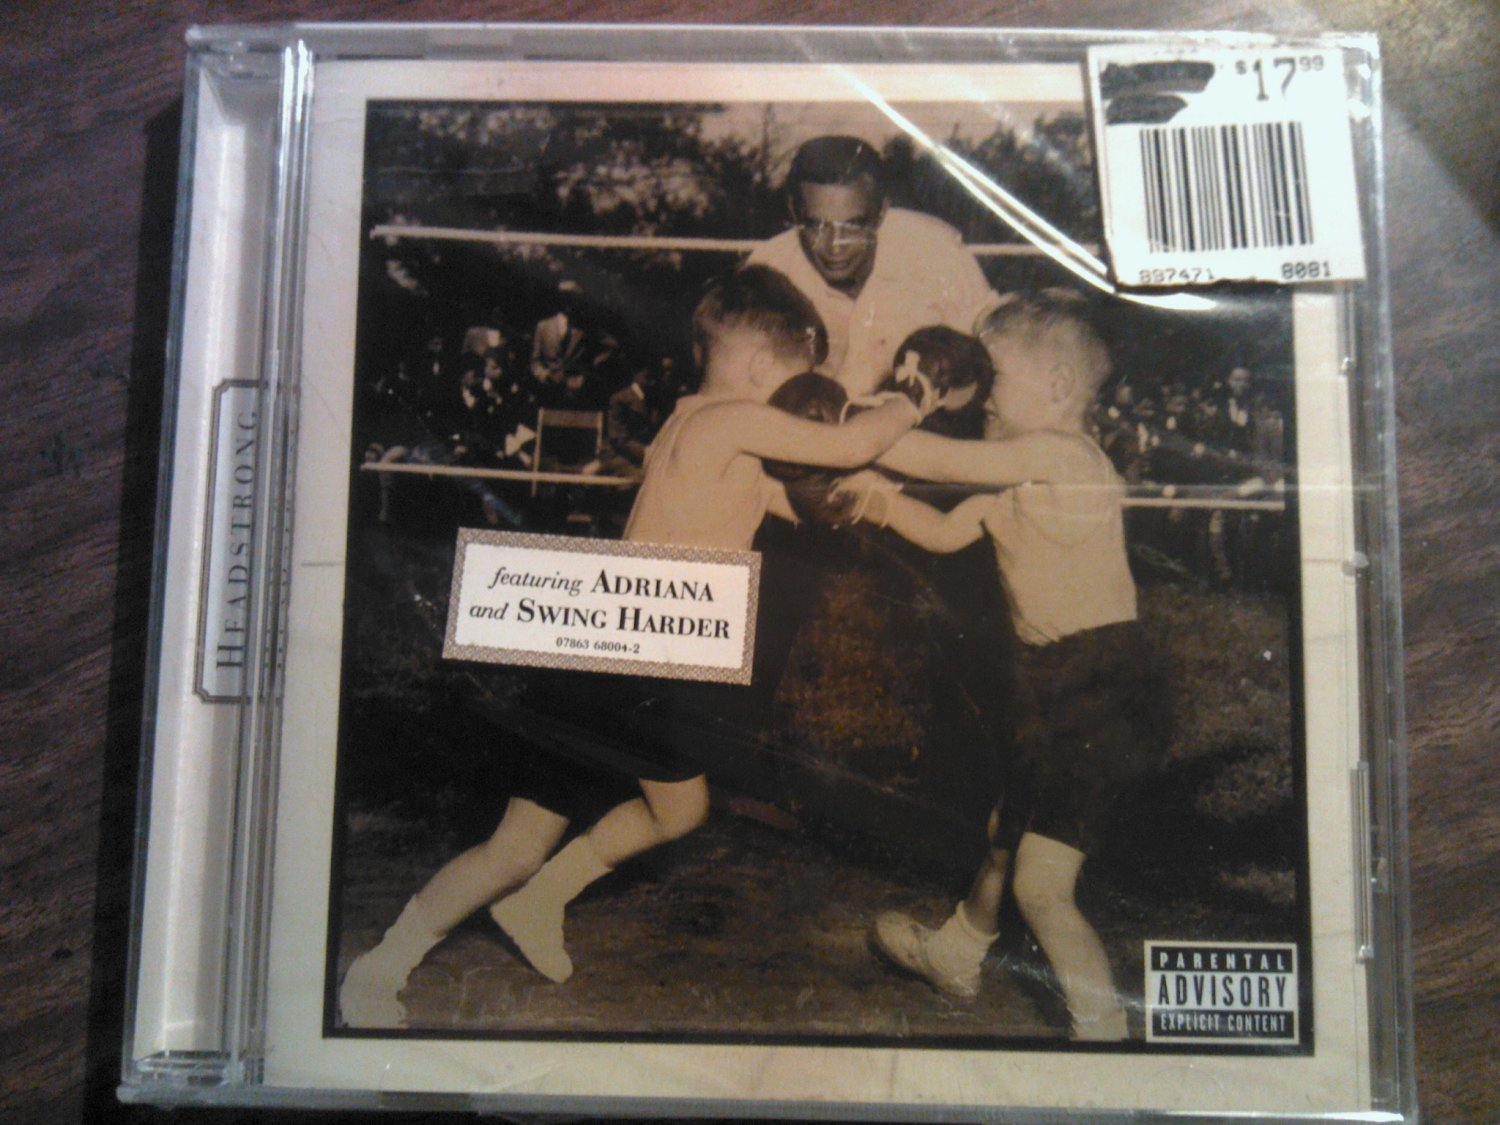 CD HEADSTRONG s/t adriana swing harder SEALED